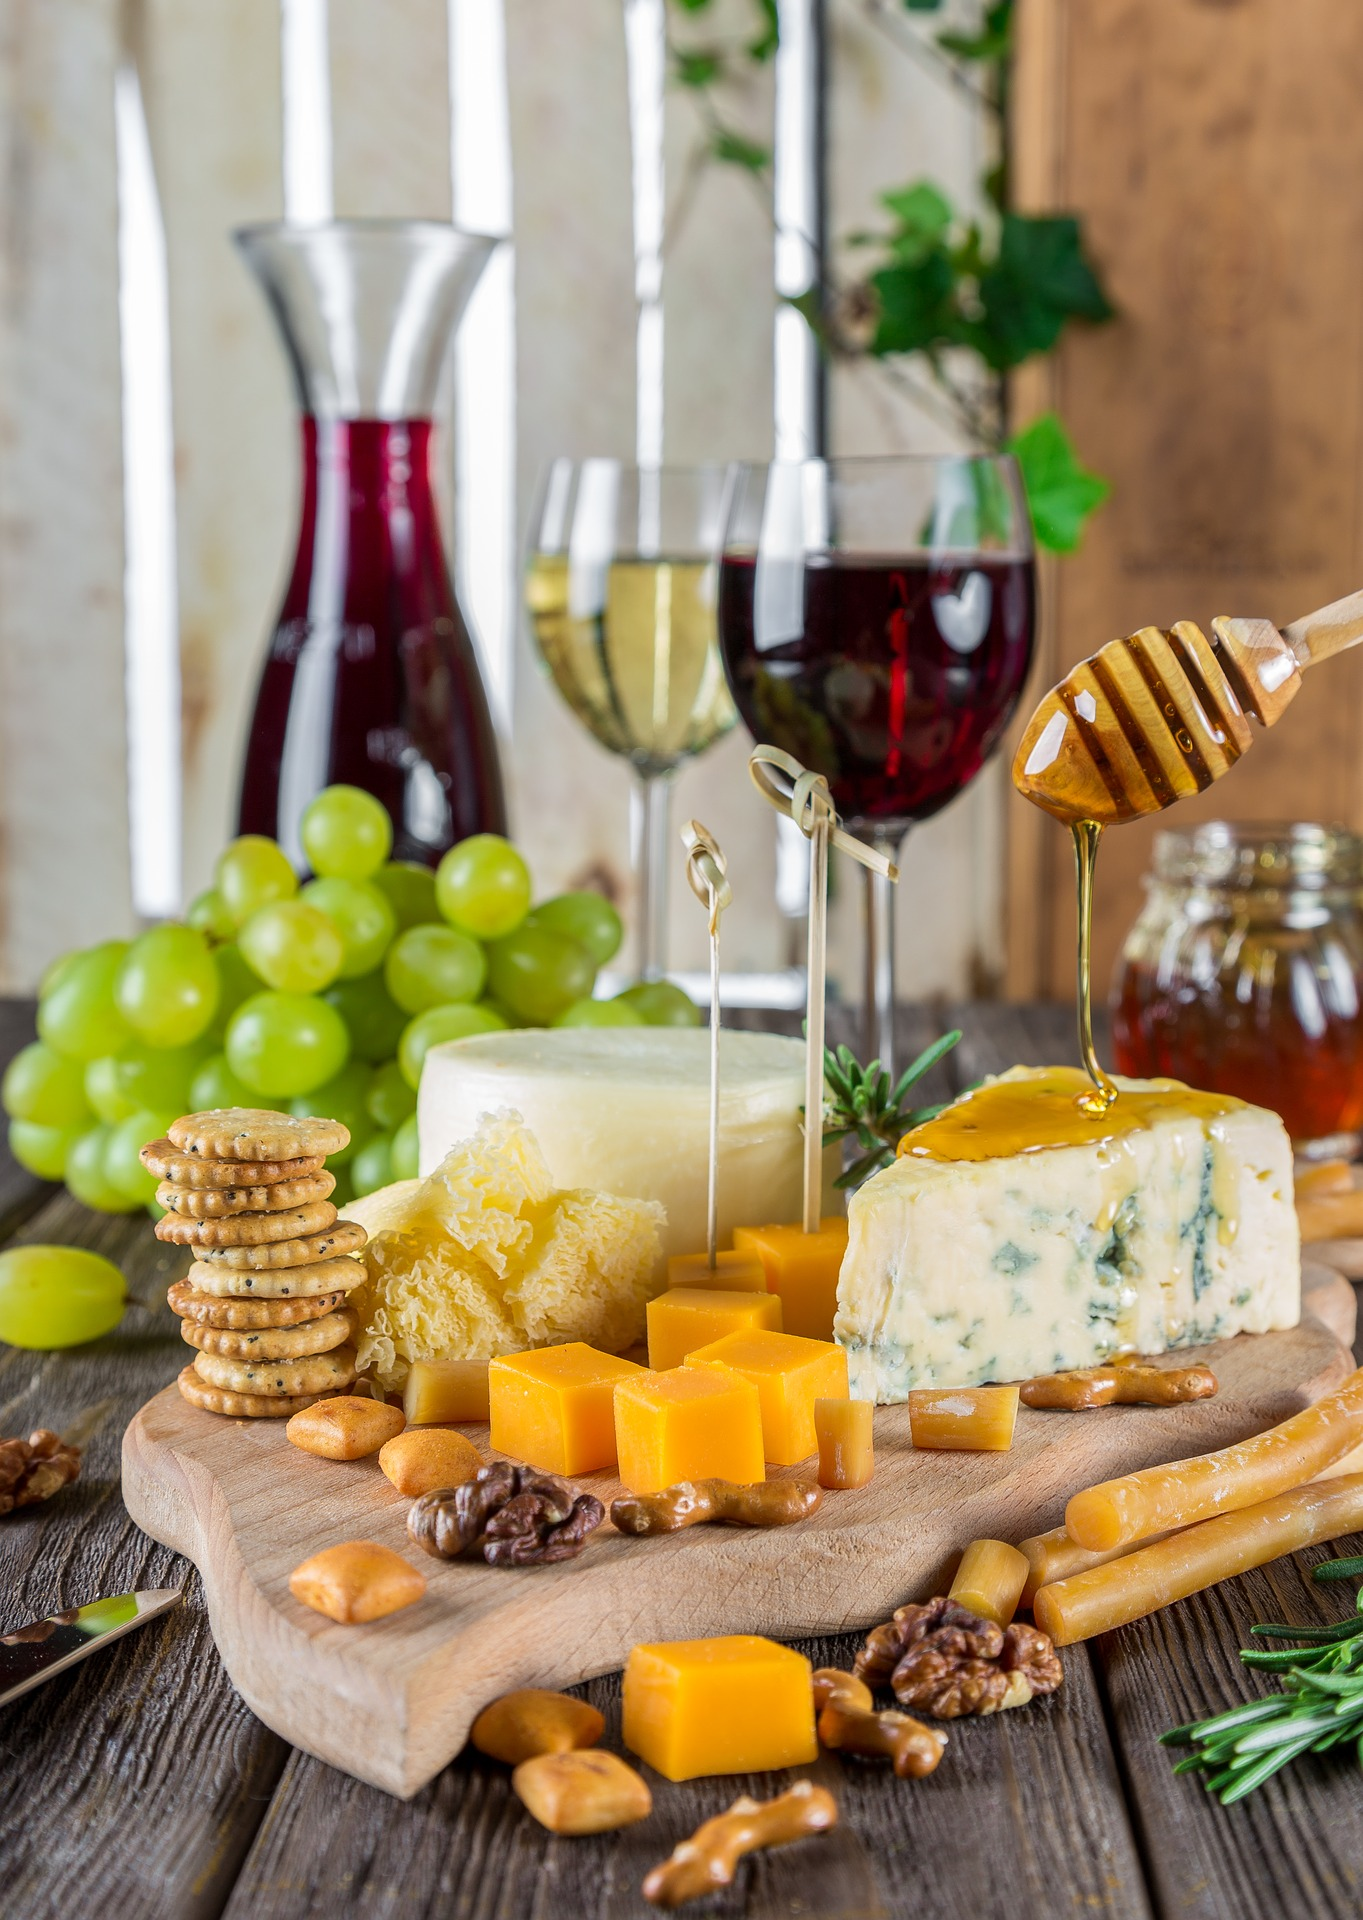 Glasses of wine cheeses and crackers decoratively arranged